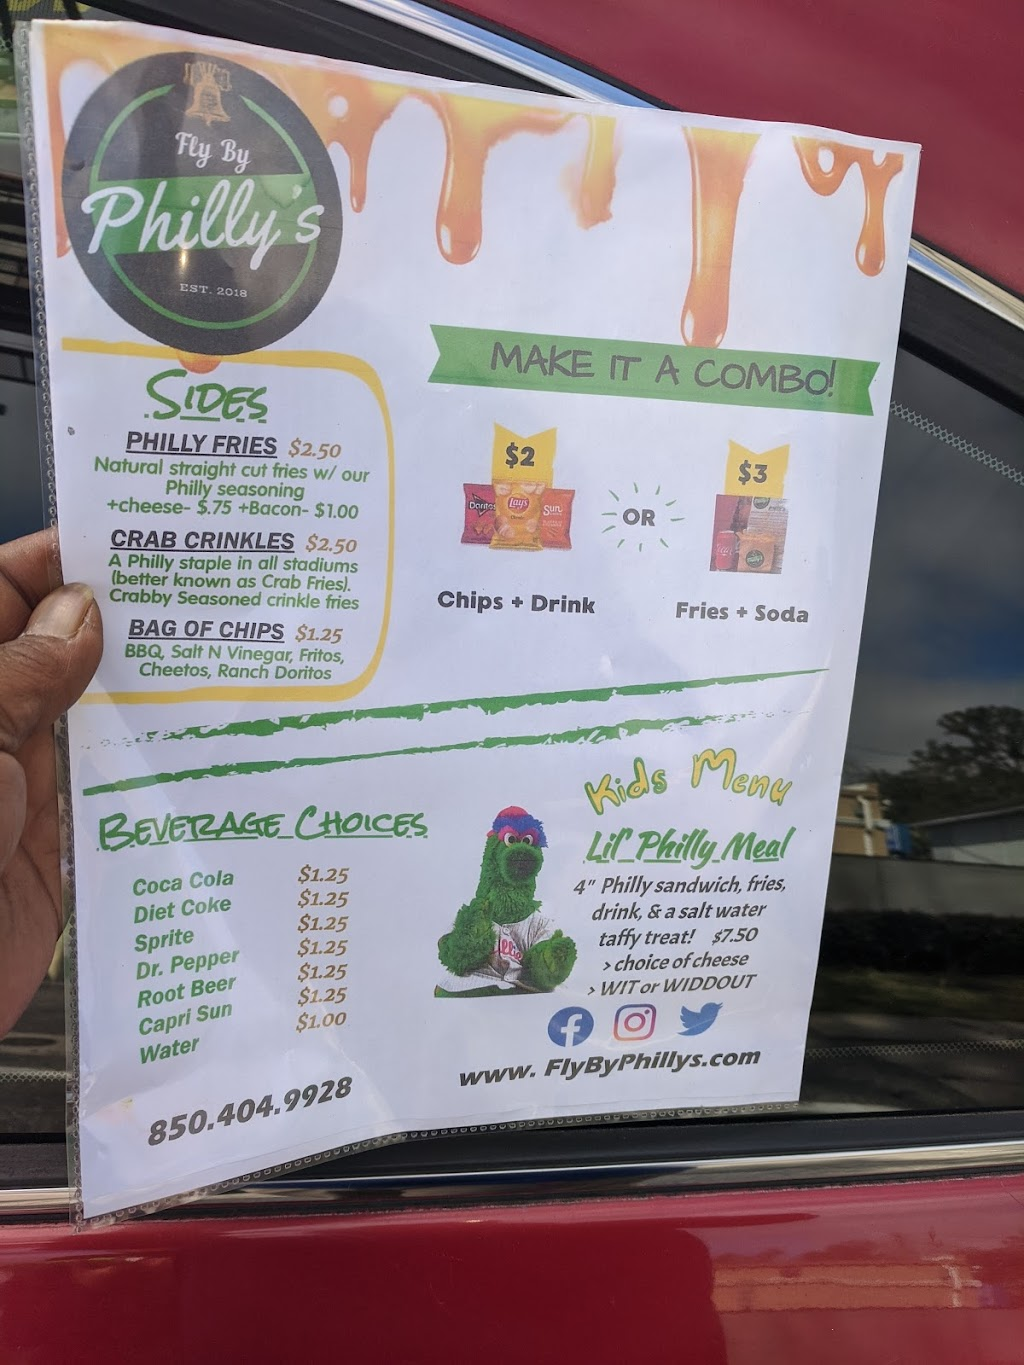 Fly By Phillys   restaurant   2205 Apalachee Pkwy, Tallahassee, FL 32301, USA   8504049928 OR +1 850-404-9928